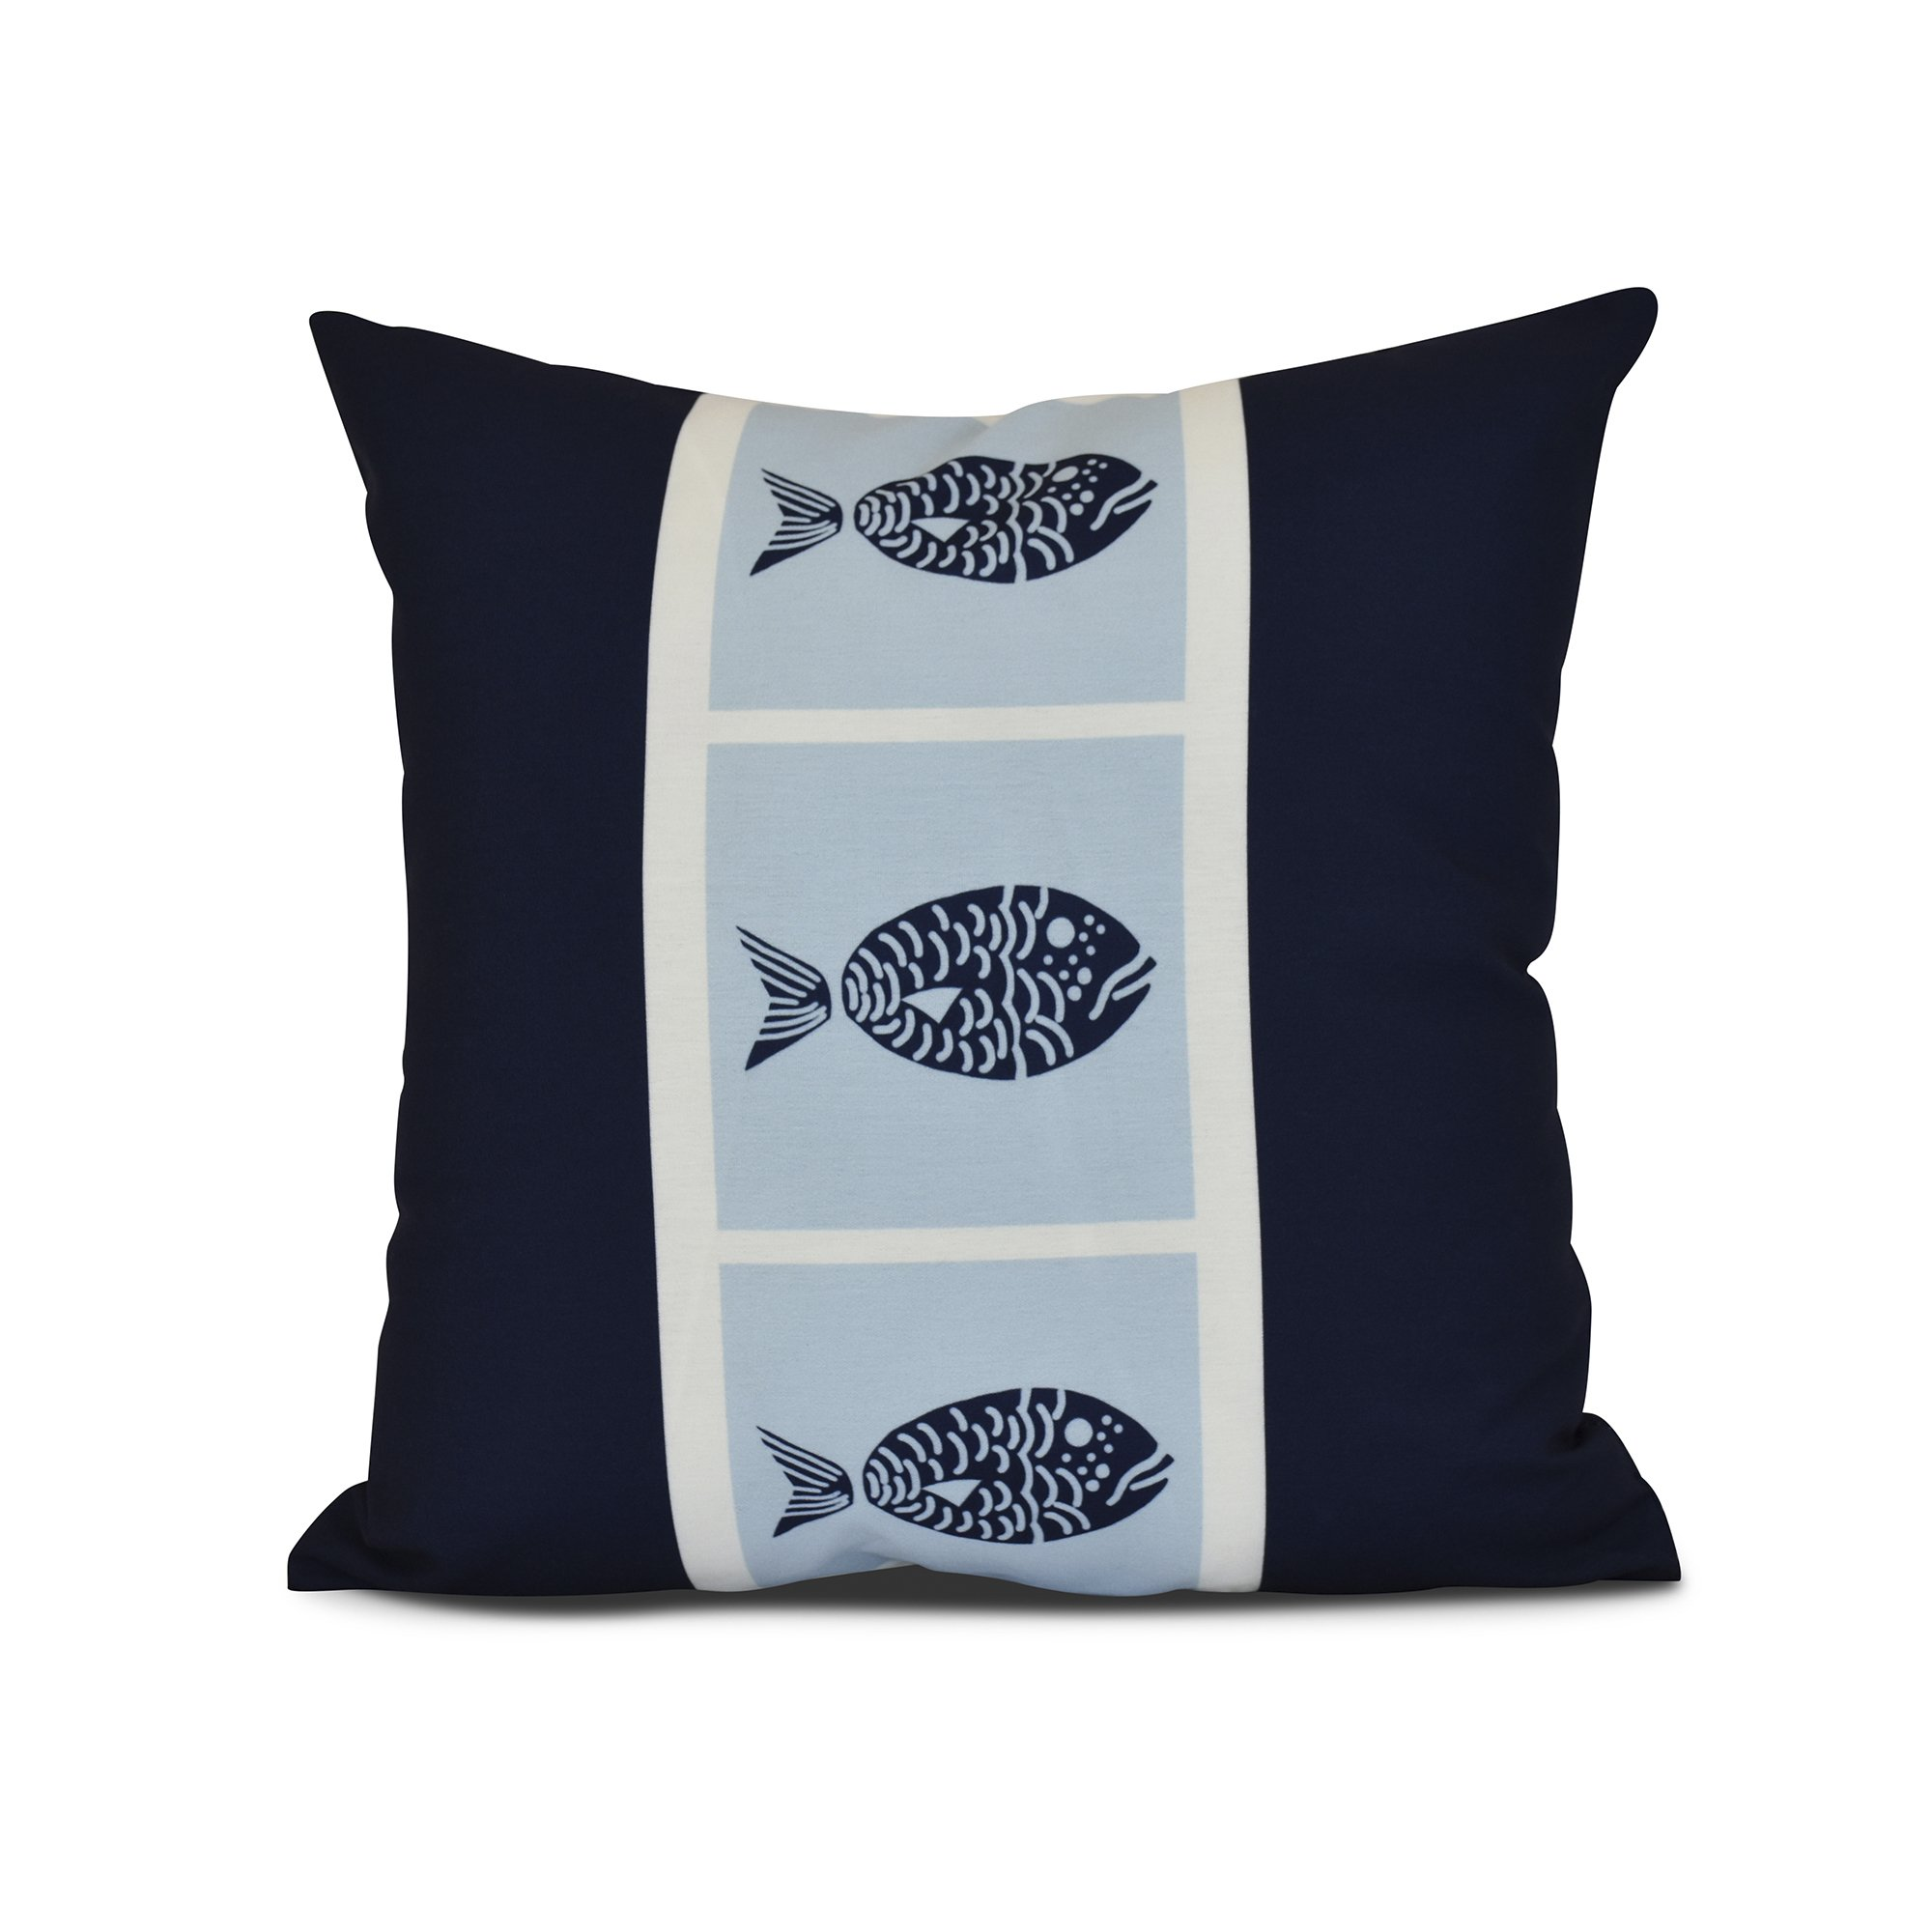 E by design Fish Chips Animal Print Pillow, 16 x 16, Navy Blue